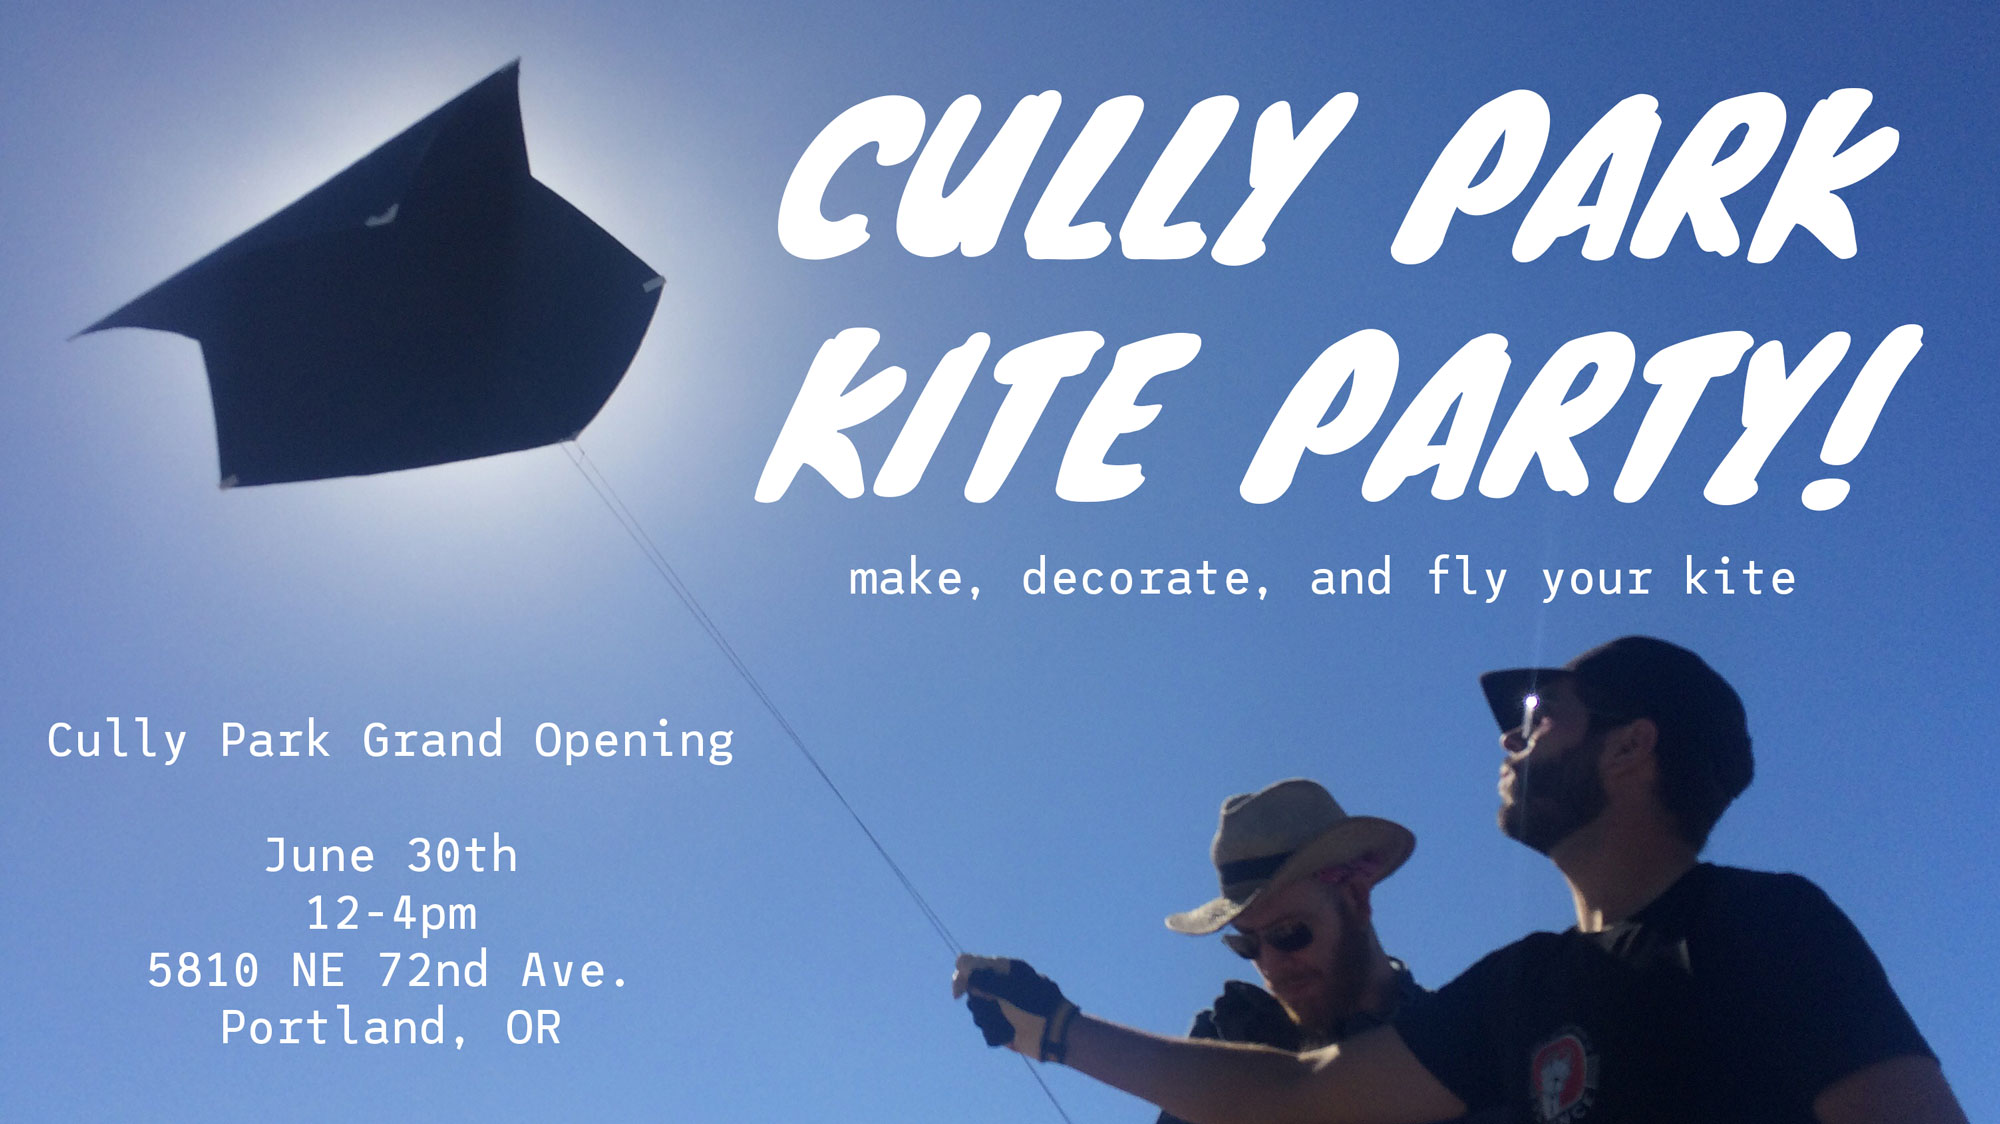 Cully Park Kite Party